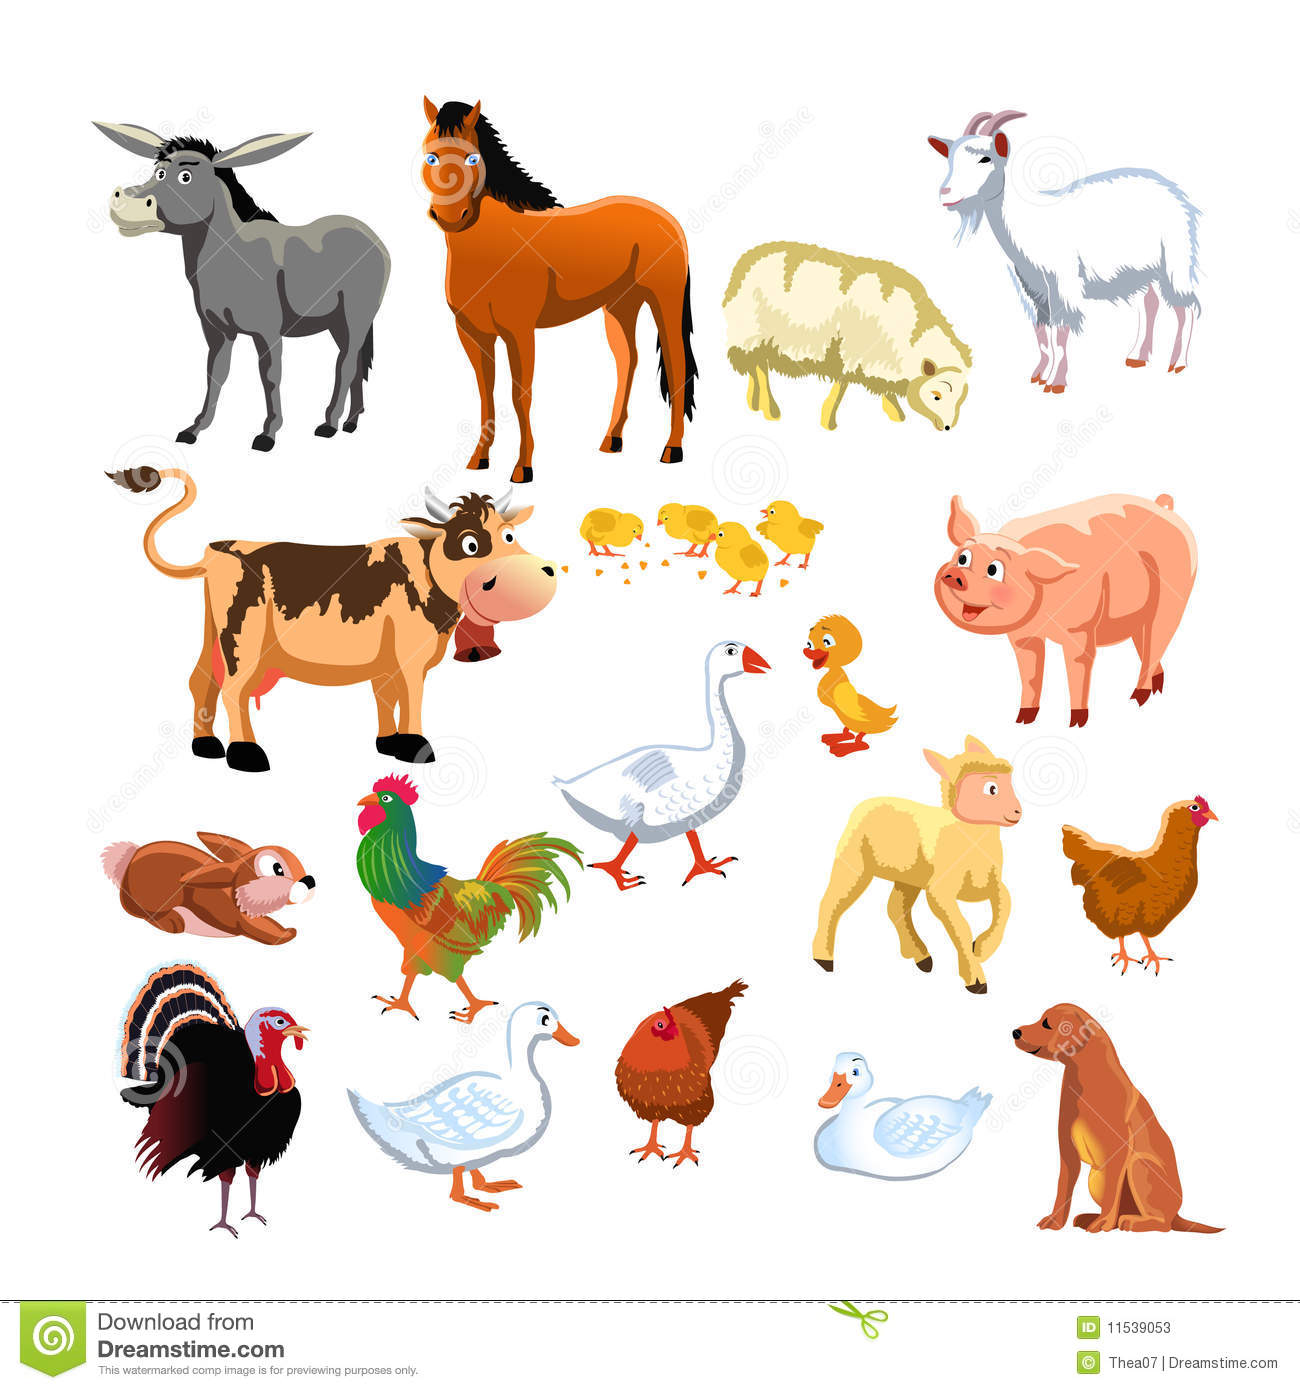 Animaux de ferme illustration de vecteur illustration du - Animaux ferme photos ...